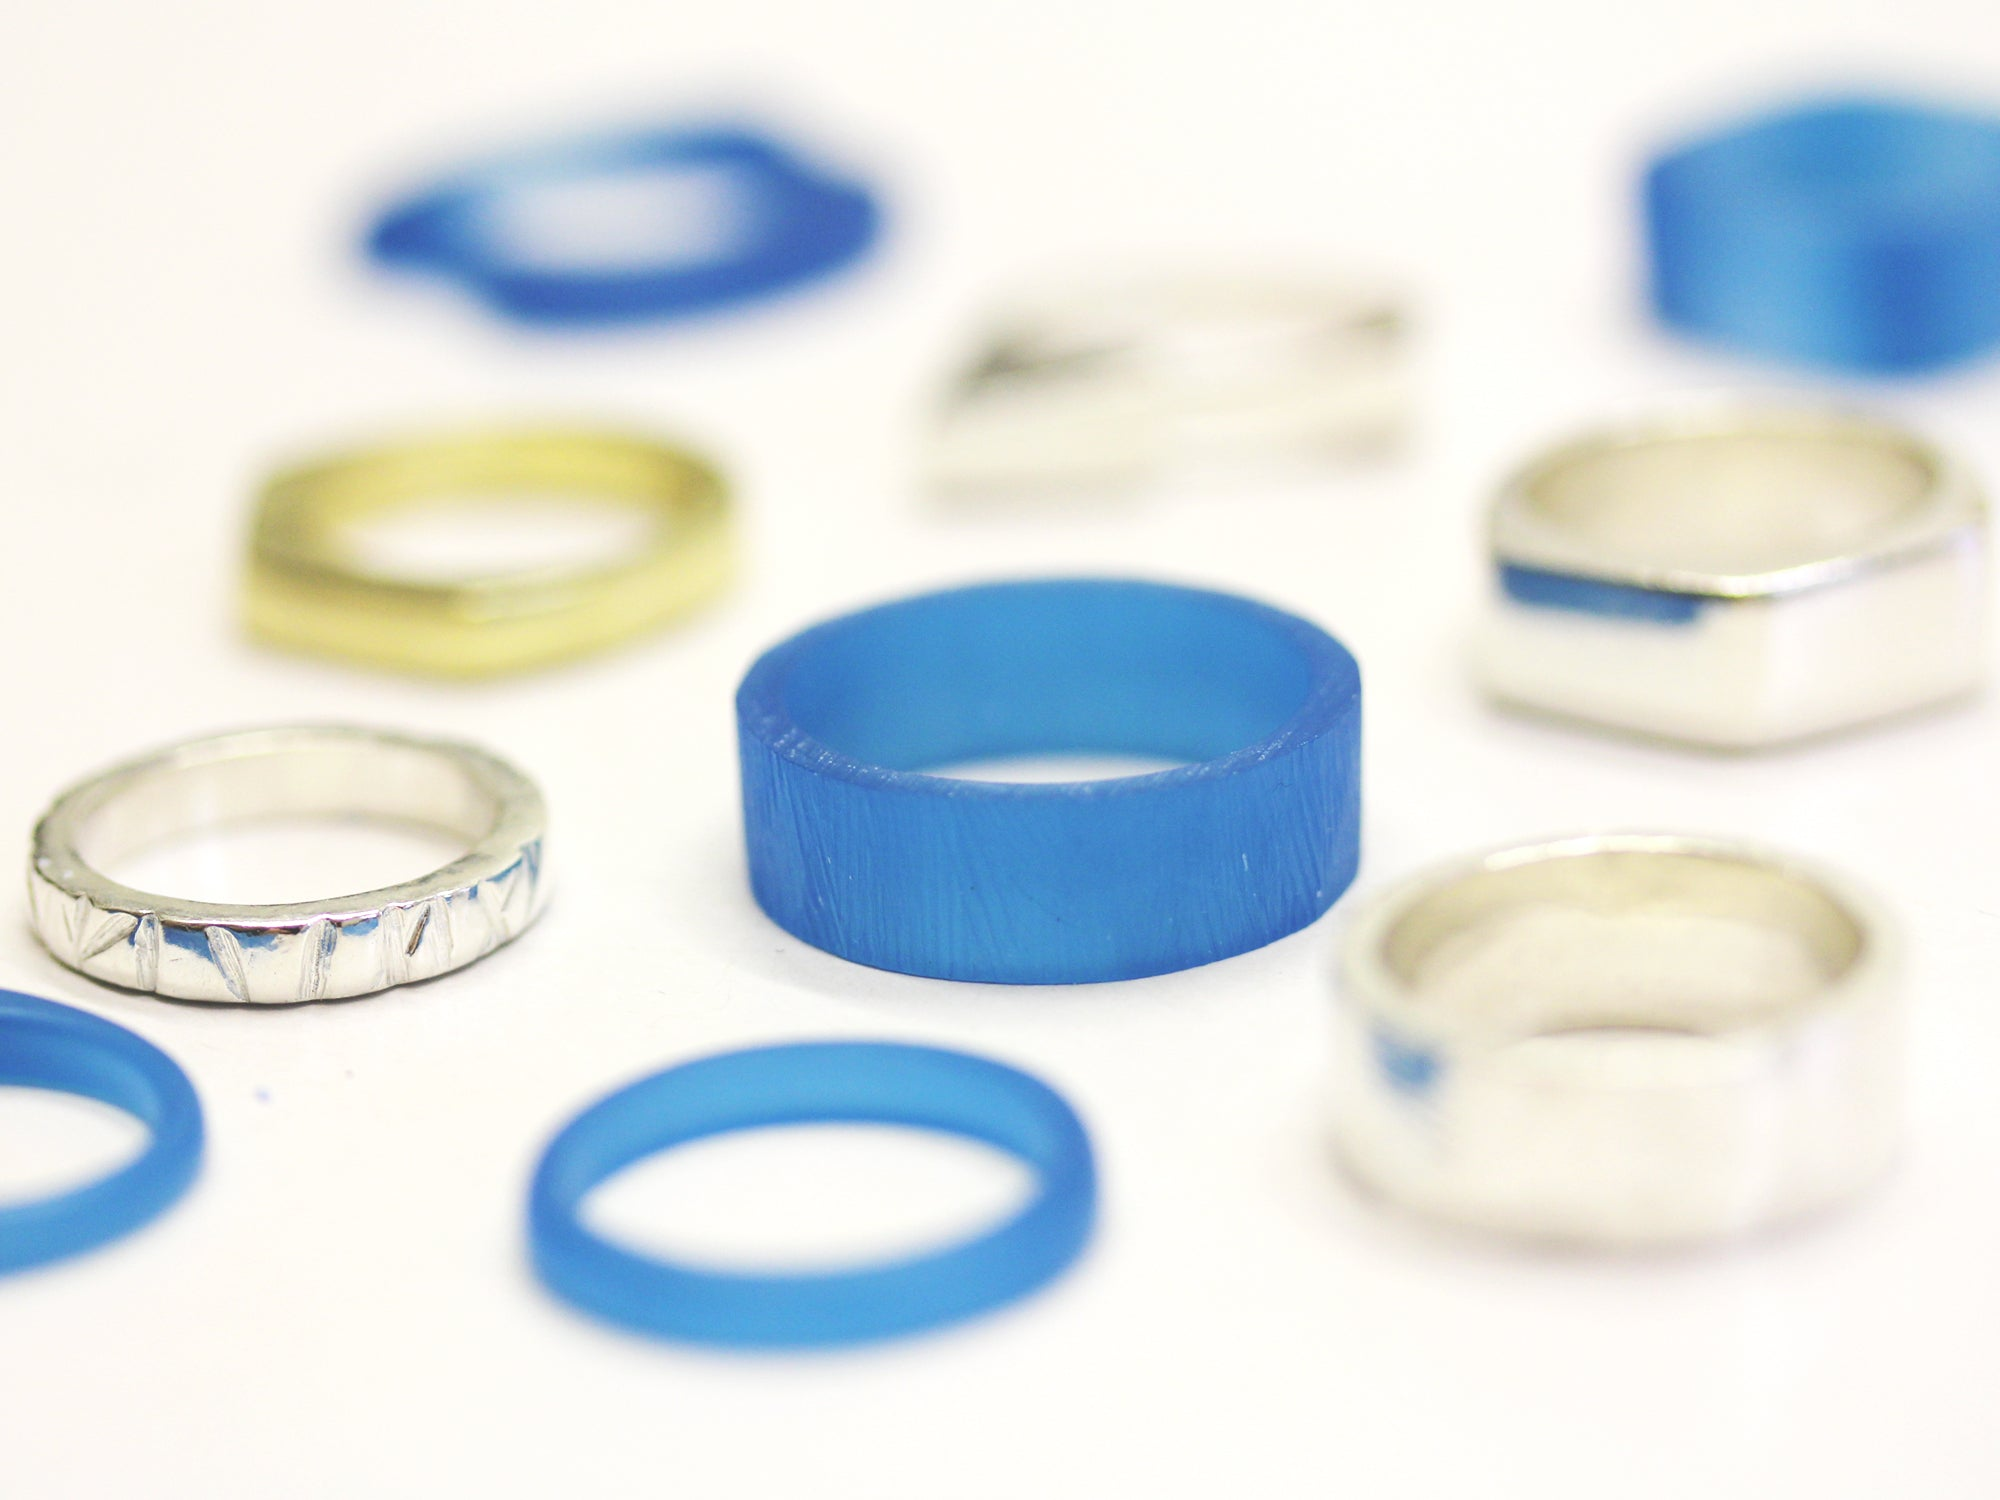 Refill Kit - Carve Your Own Ring